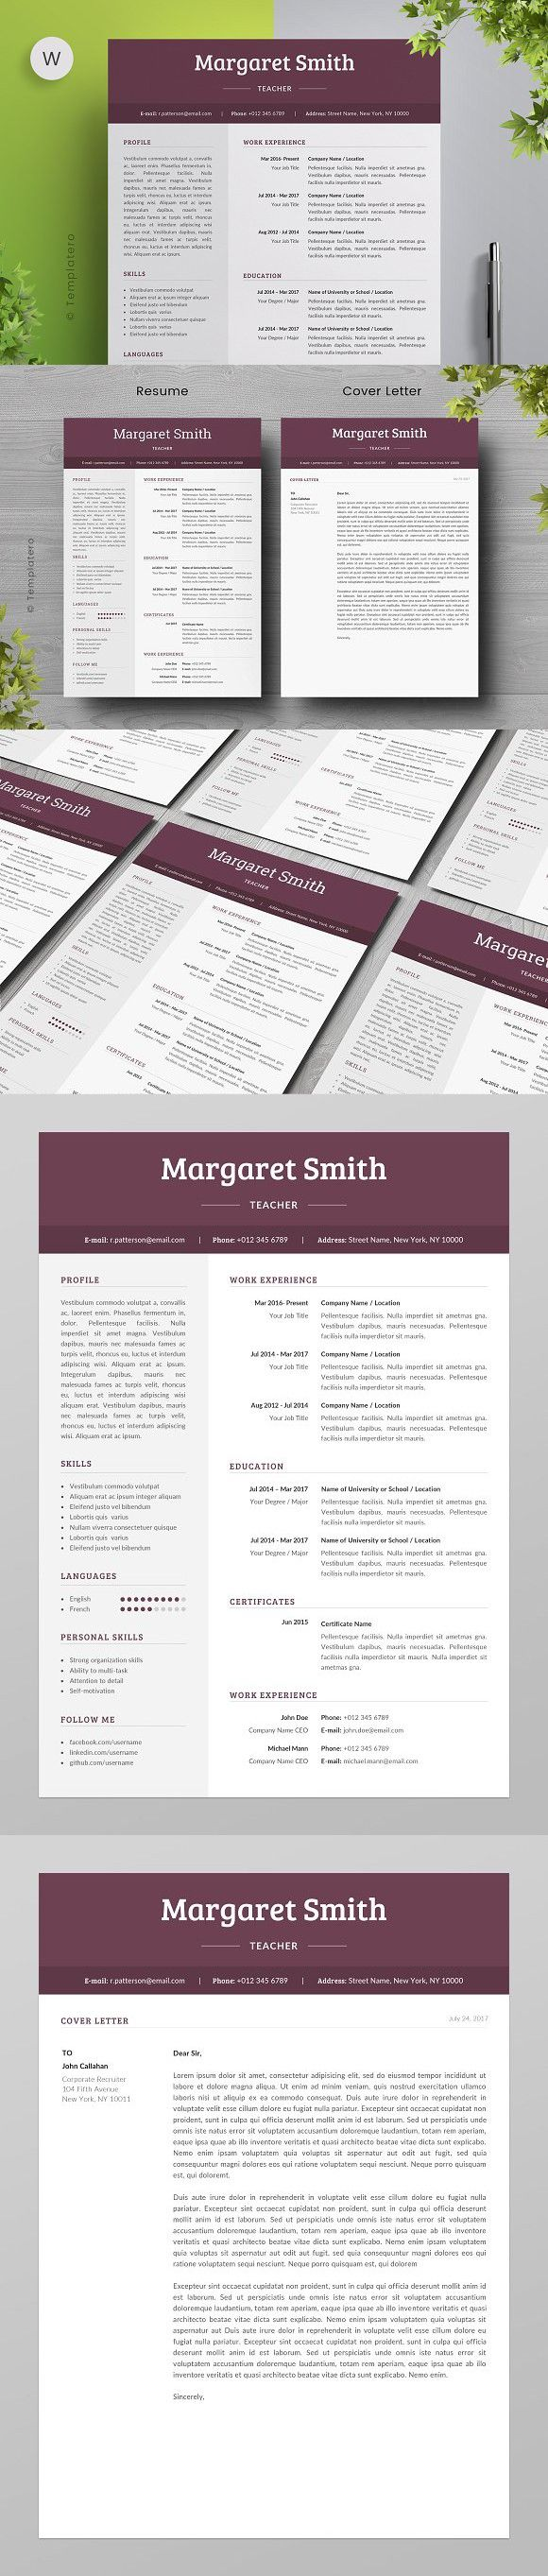 Chronological Resume Samples%0A Resume Template   Free Cover Letter  Resume Templates